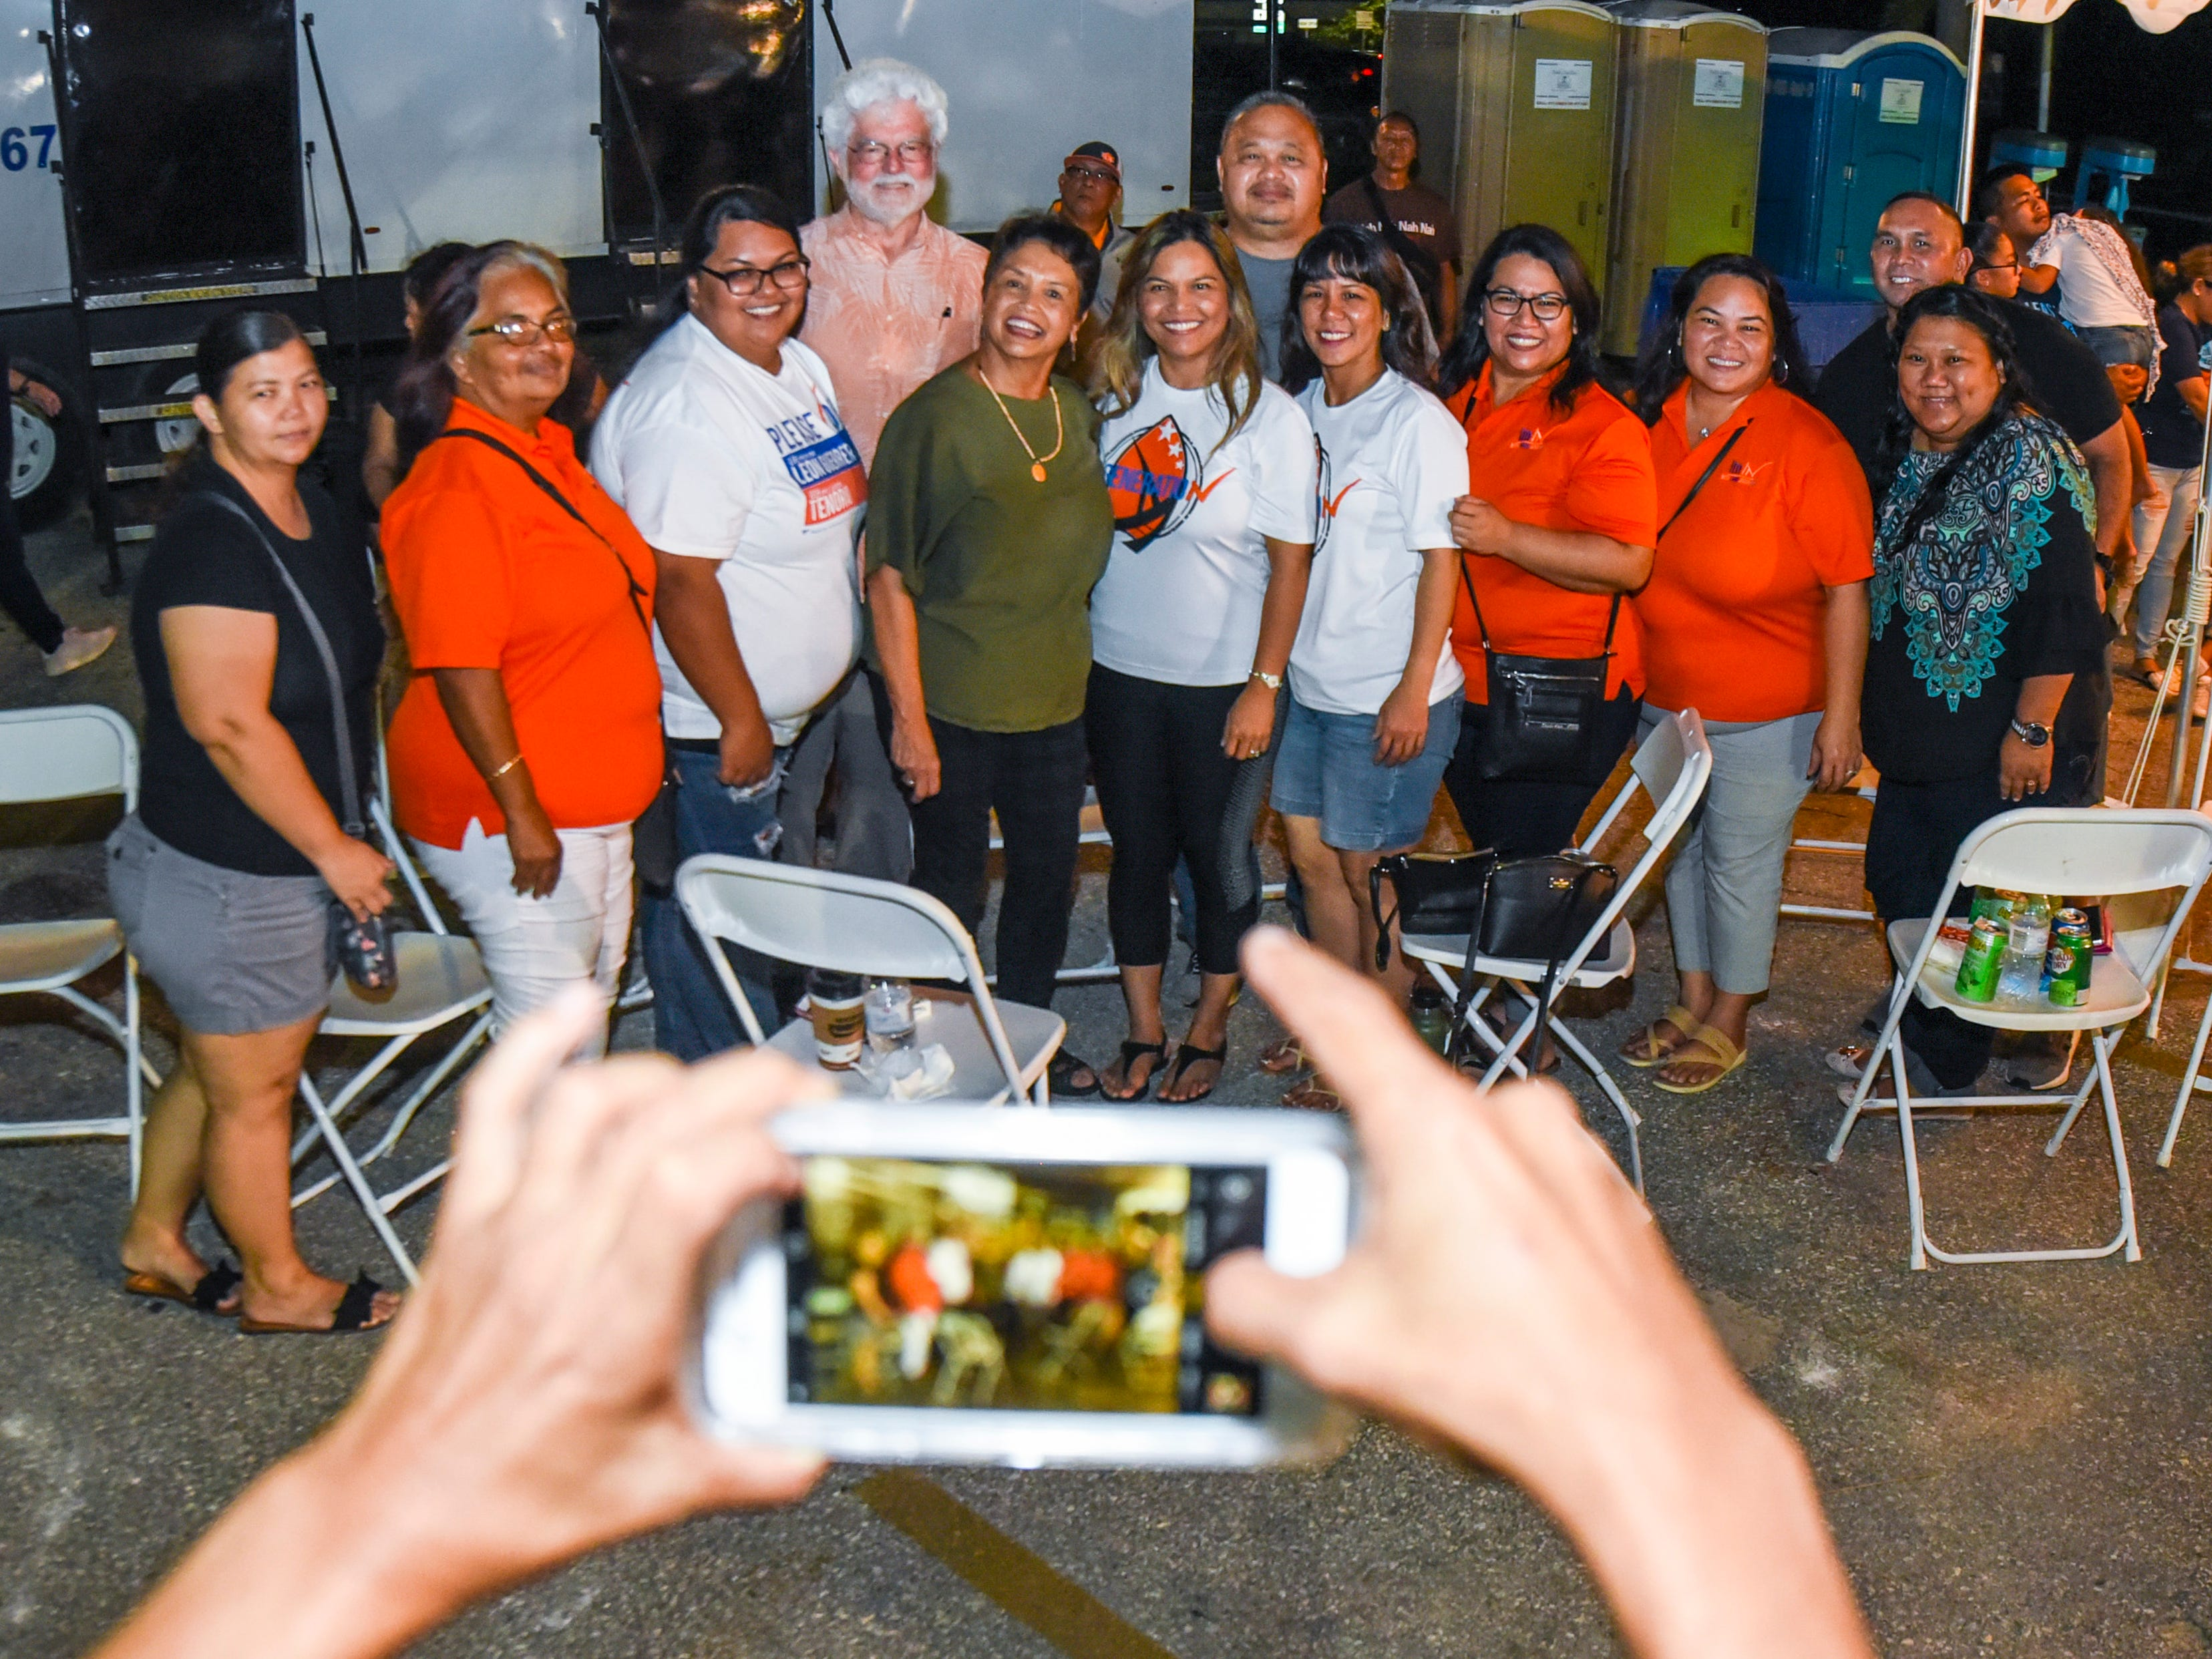 Democratic gubernatorial candidate, Lou Leon Guerrero, wearing green, celebrates supporters after favorable early returns at the team's campaign headquarters in Hagåtña during the late evening hours of Tuesday, Nov. 6, 2018.